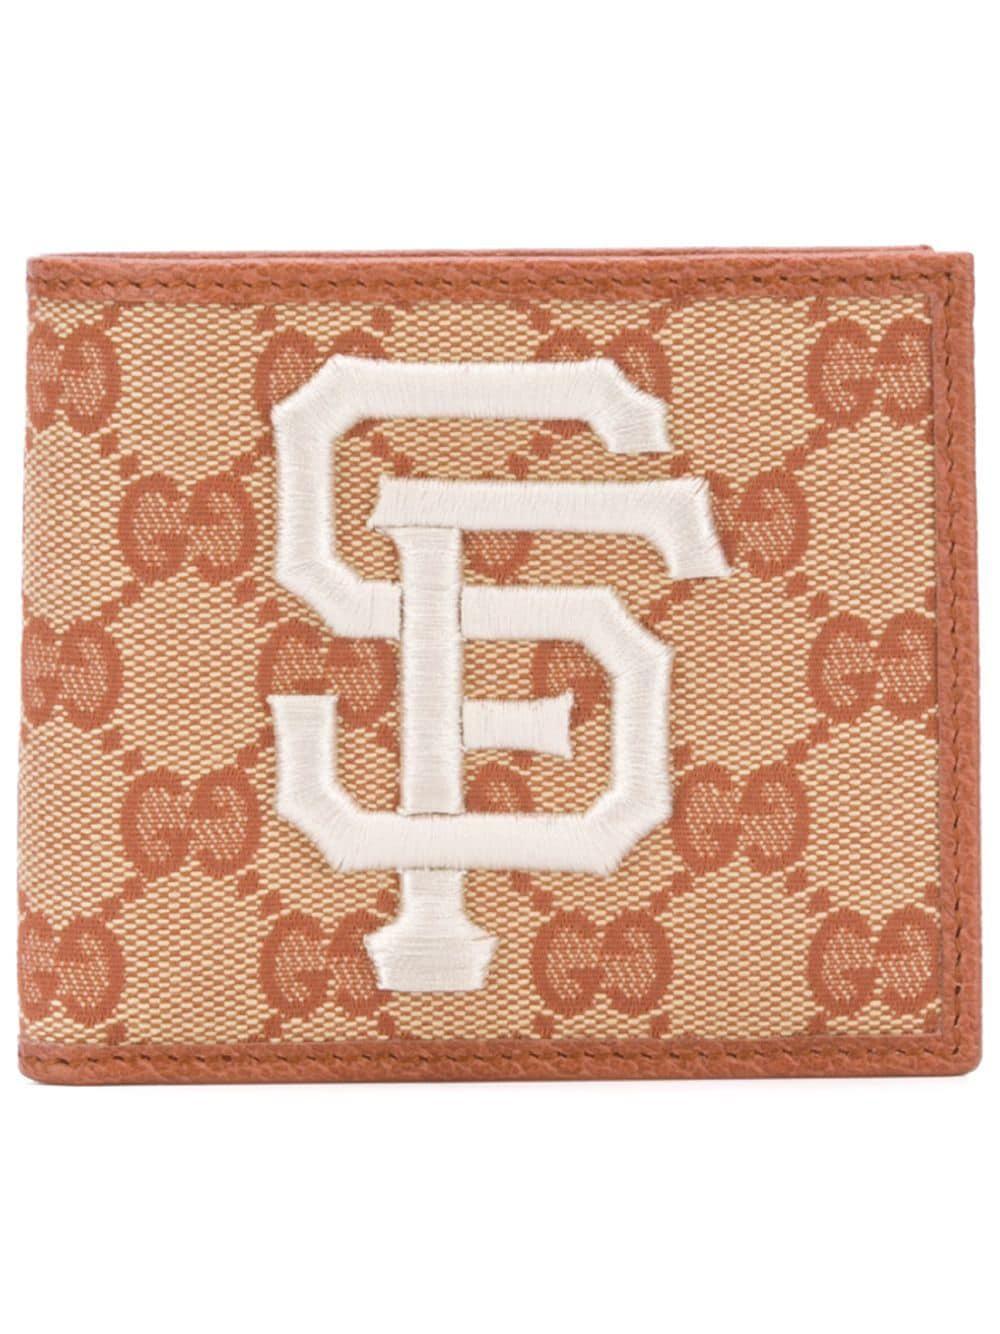 9242fd4ff2ce5 Gucci Wallet With Sf Giants™ Patch - Brown. Farfetch